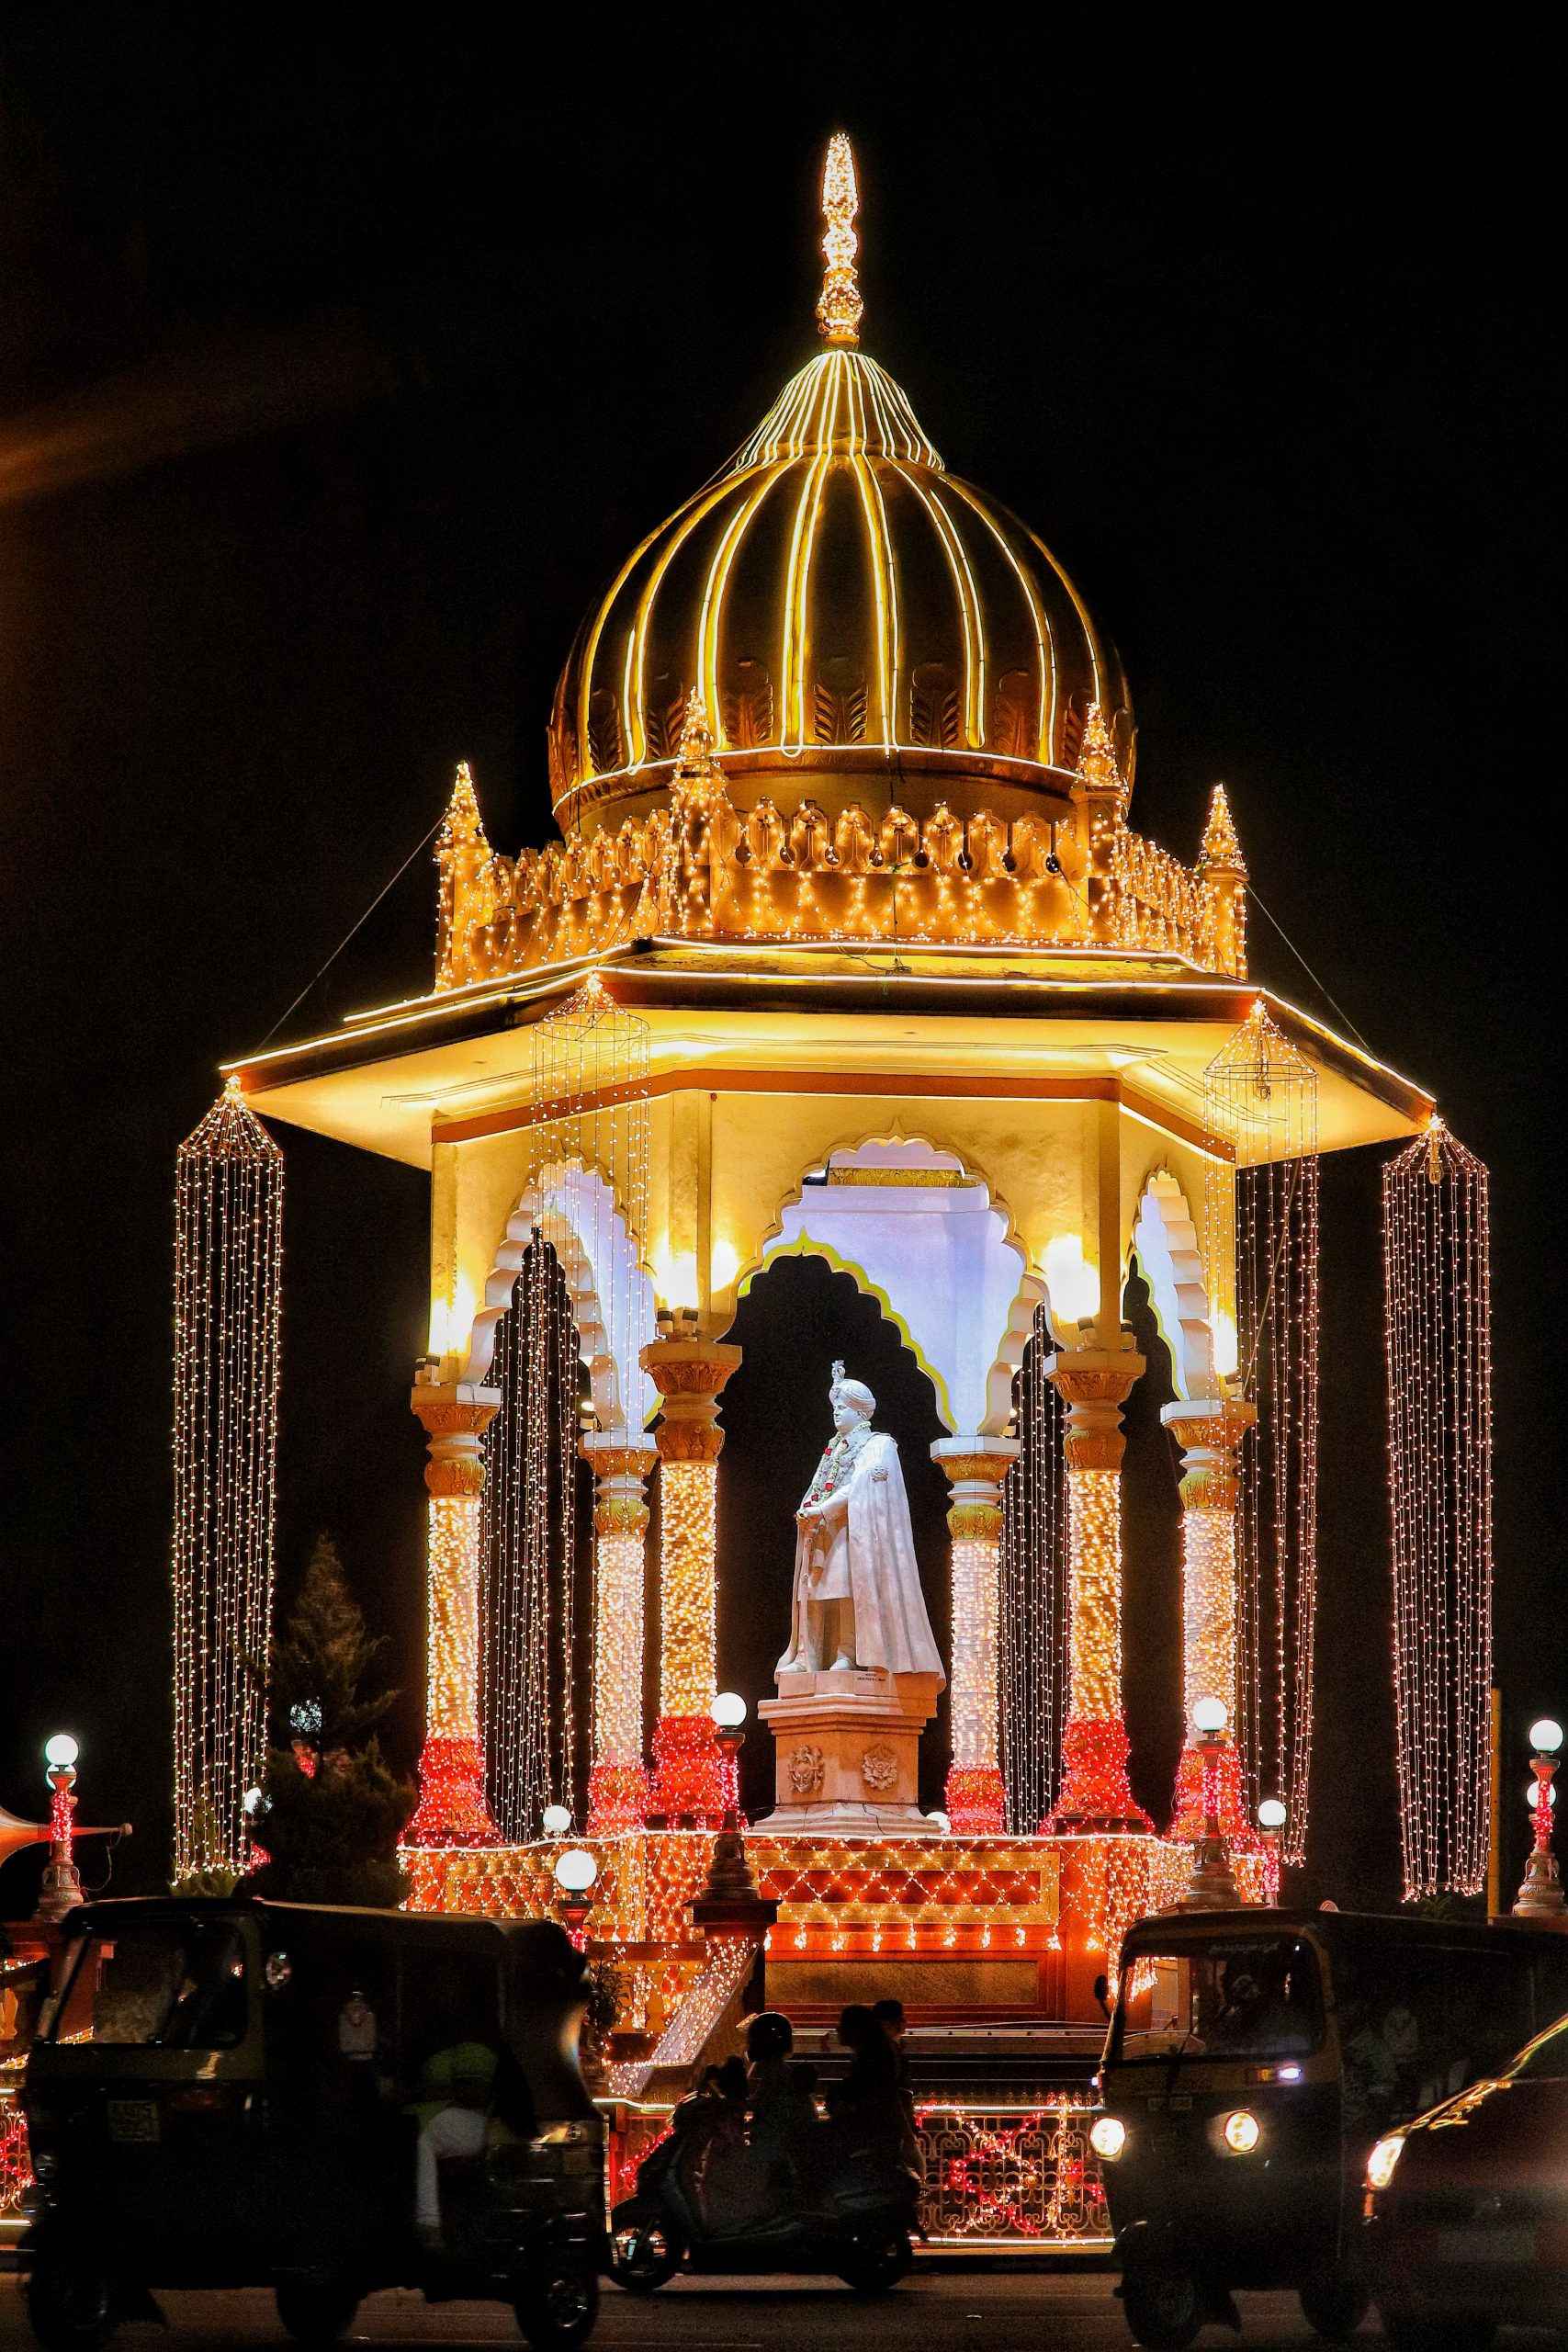 King of Mysore Monument in Lights